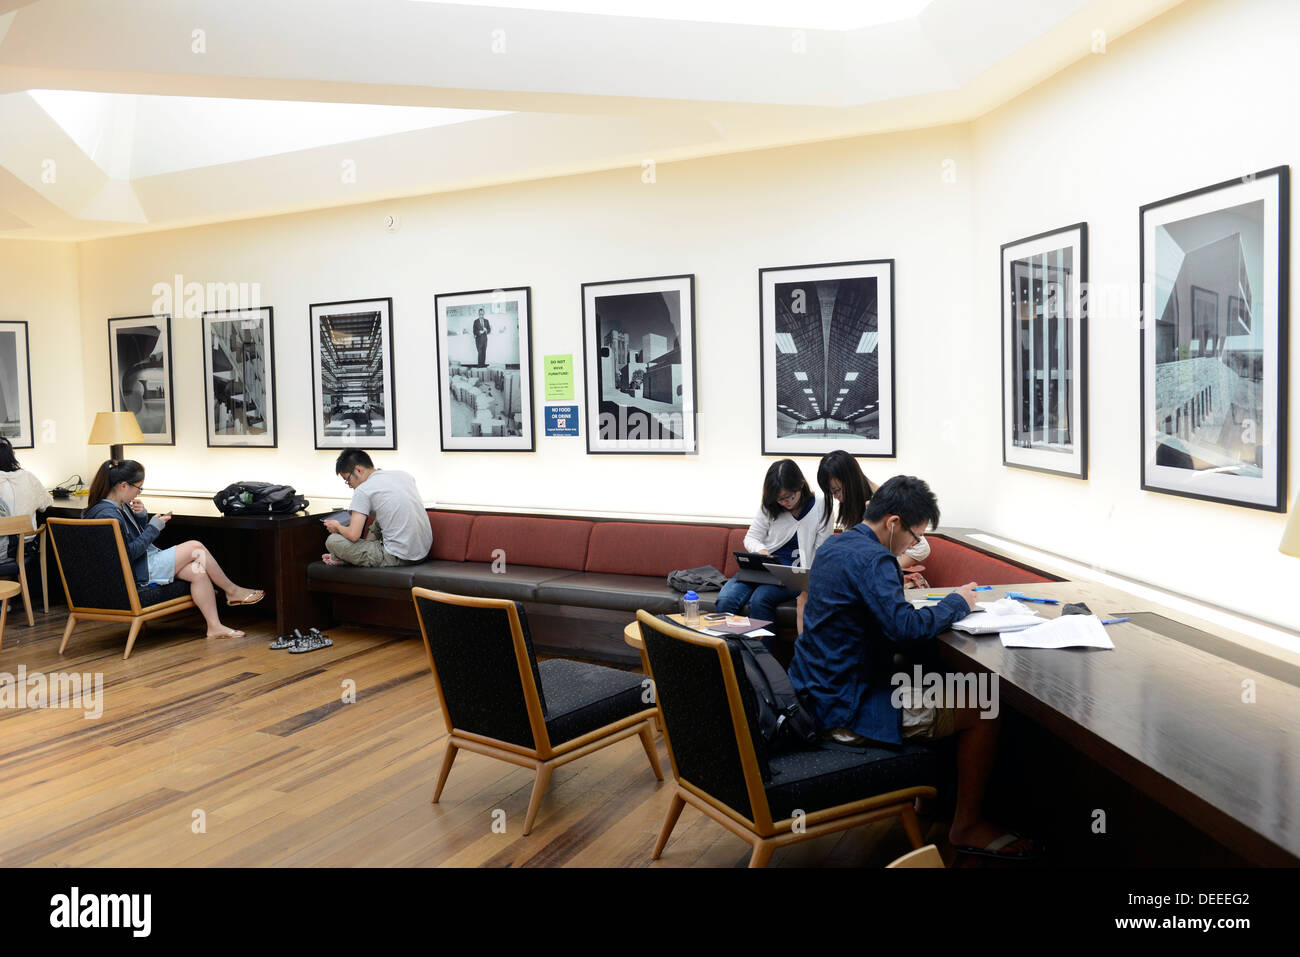 Chinese students studying at Yale Summer School study in Eero Saarinen designed Morse Residential College, built 1961. - Stock Image